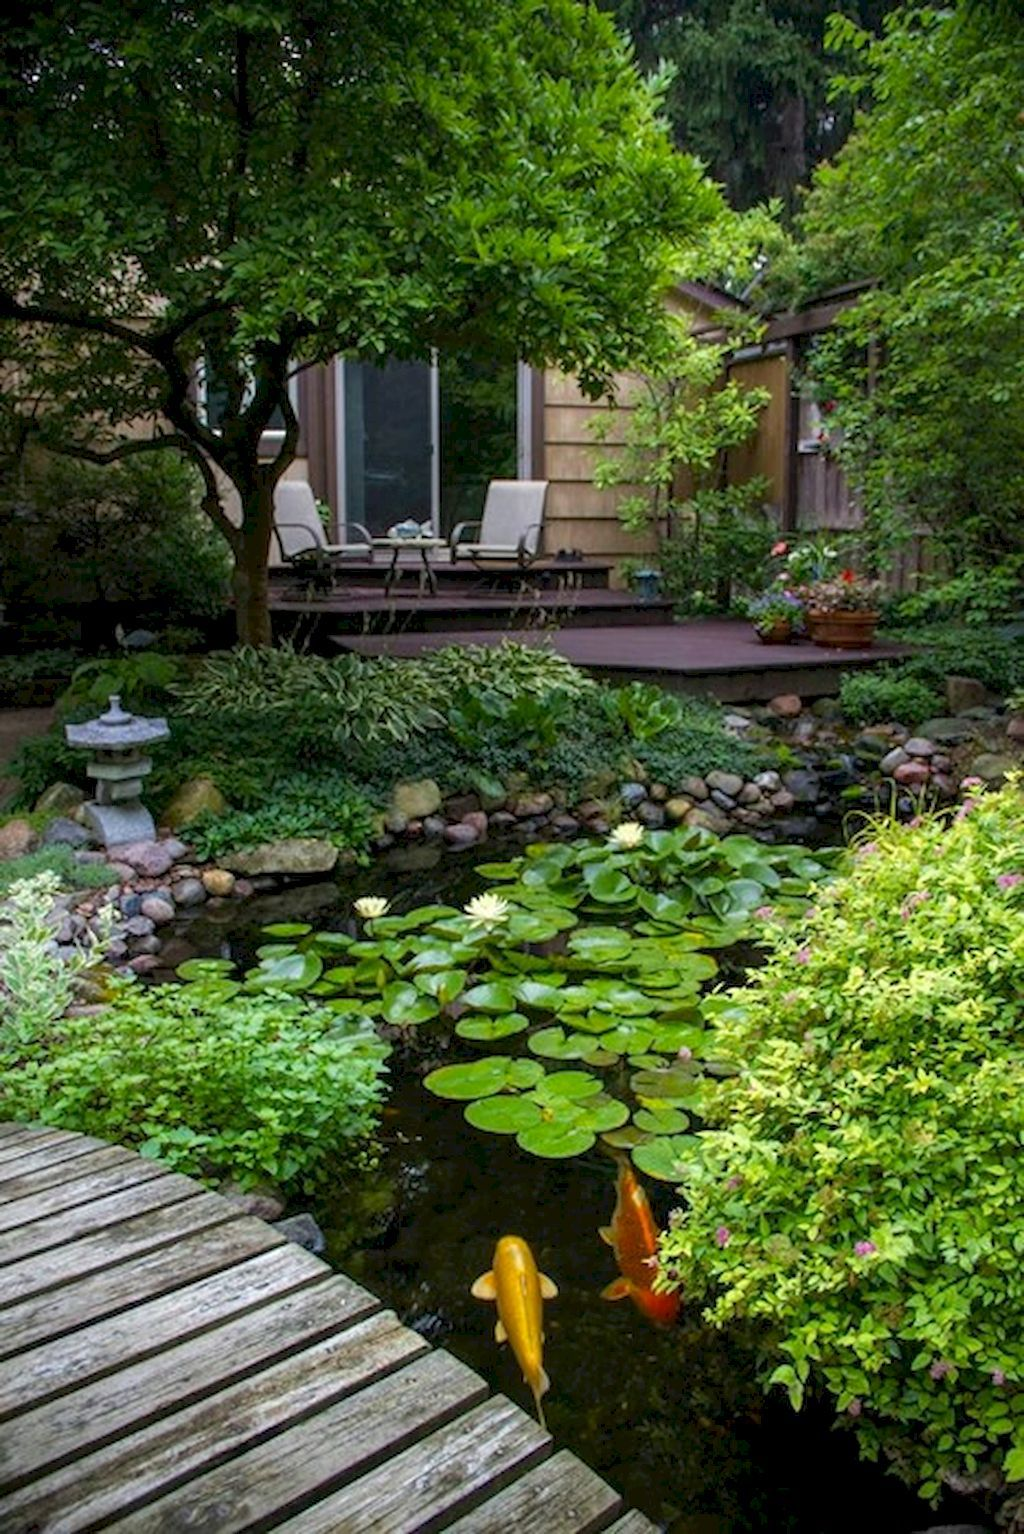 The 20 Best DIY Fun Landscaping Ideas For Your Dream Backyard on Amazing Backyard Ideas id=22962